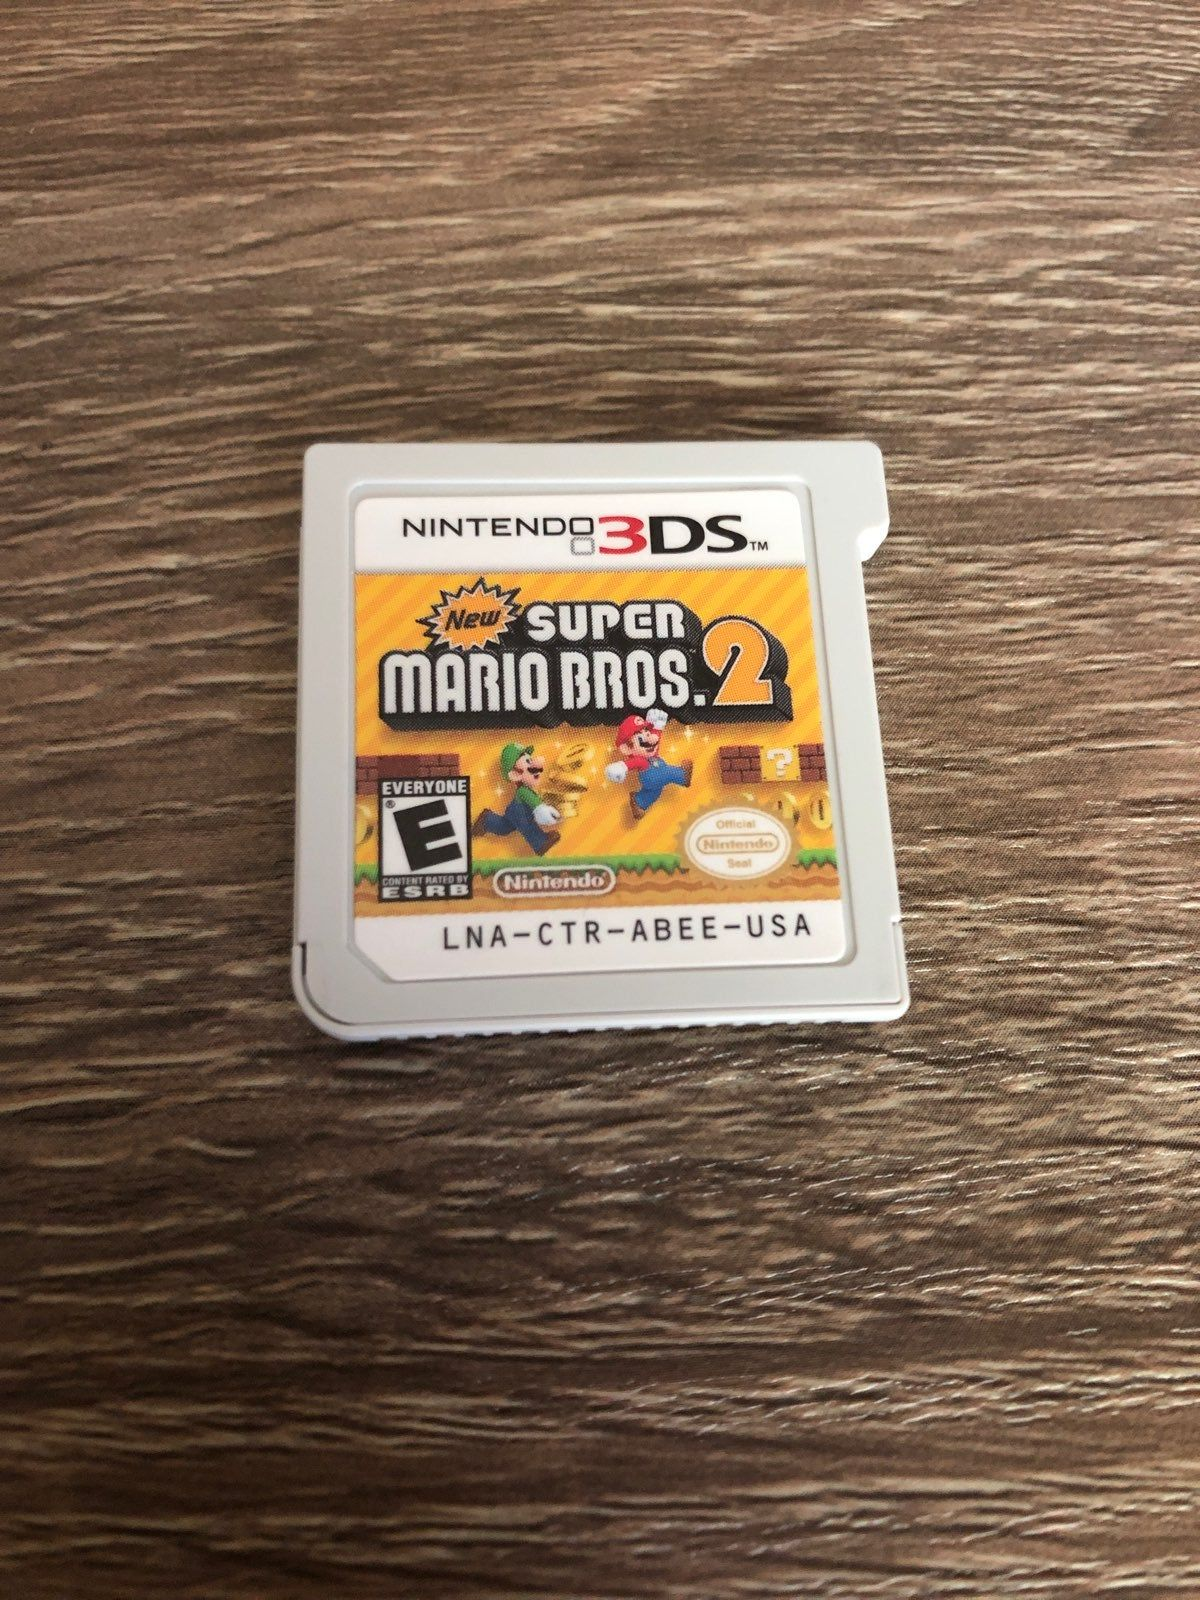 New Super Mario Bros 2 Cartridge Only 3ds Is Shown Only To Prove That The Game Works Great Game In Great Condition Mario Bros Super Mario Bros Super Mario